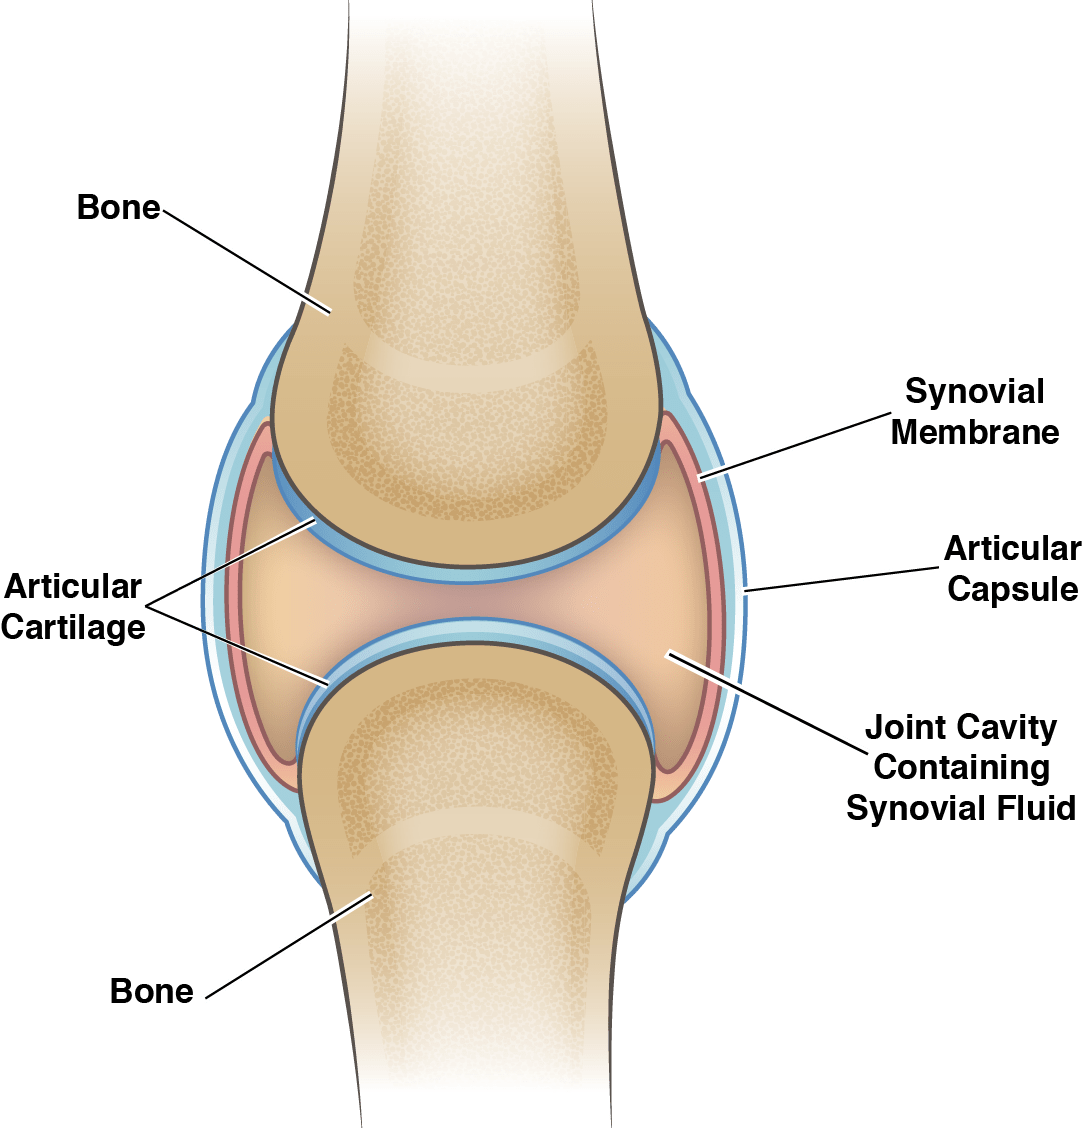 hight resolution of knee joint cavity diagram